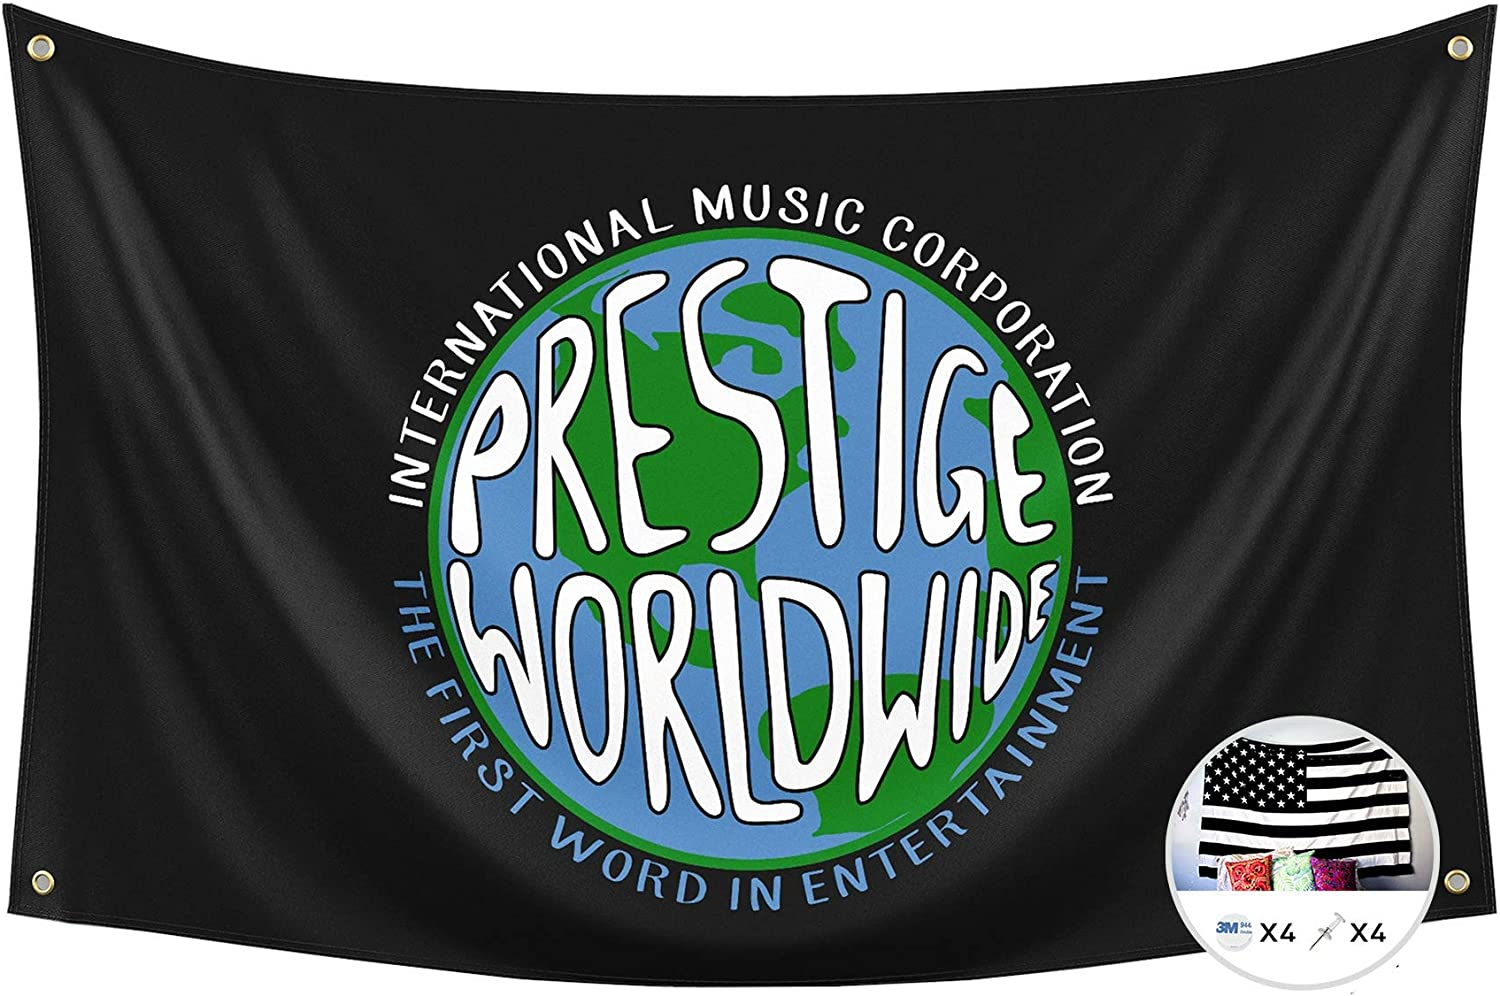 Prestige Worldwide Flag International Music Corporation 3x5 Feet Banner,Step Brothers Funny Poster UV Resistance Fading & Durable Man Cave Wall Flag with Brass Grommets for College Dorm Room Decor